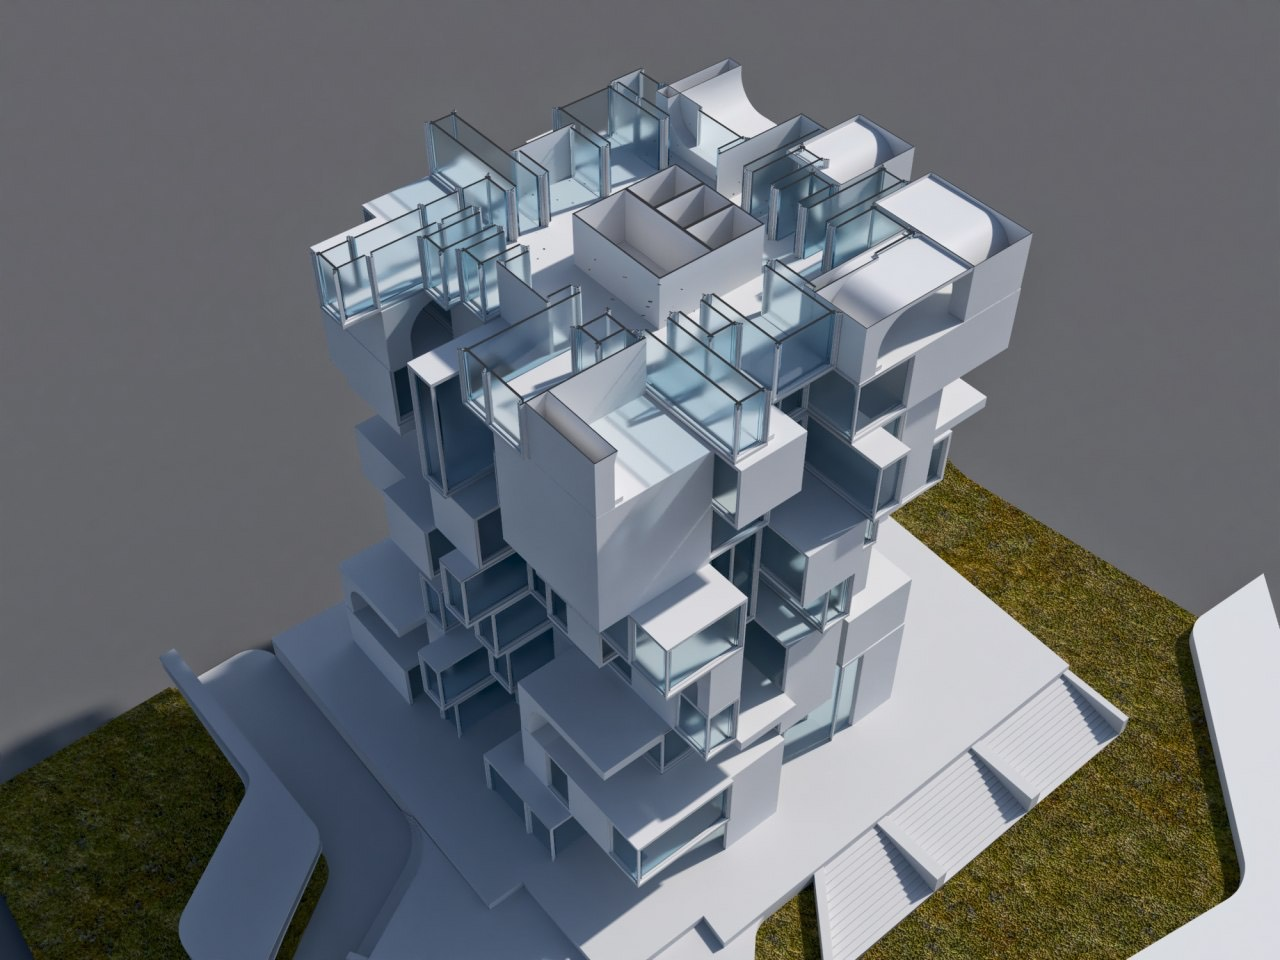 architectural model before rendering process